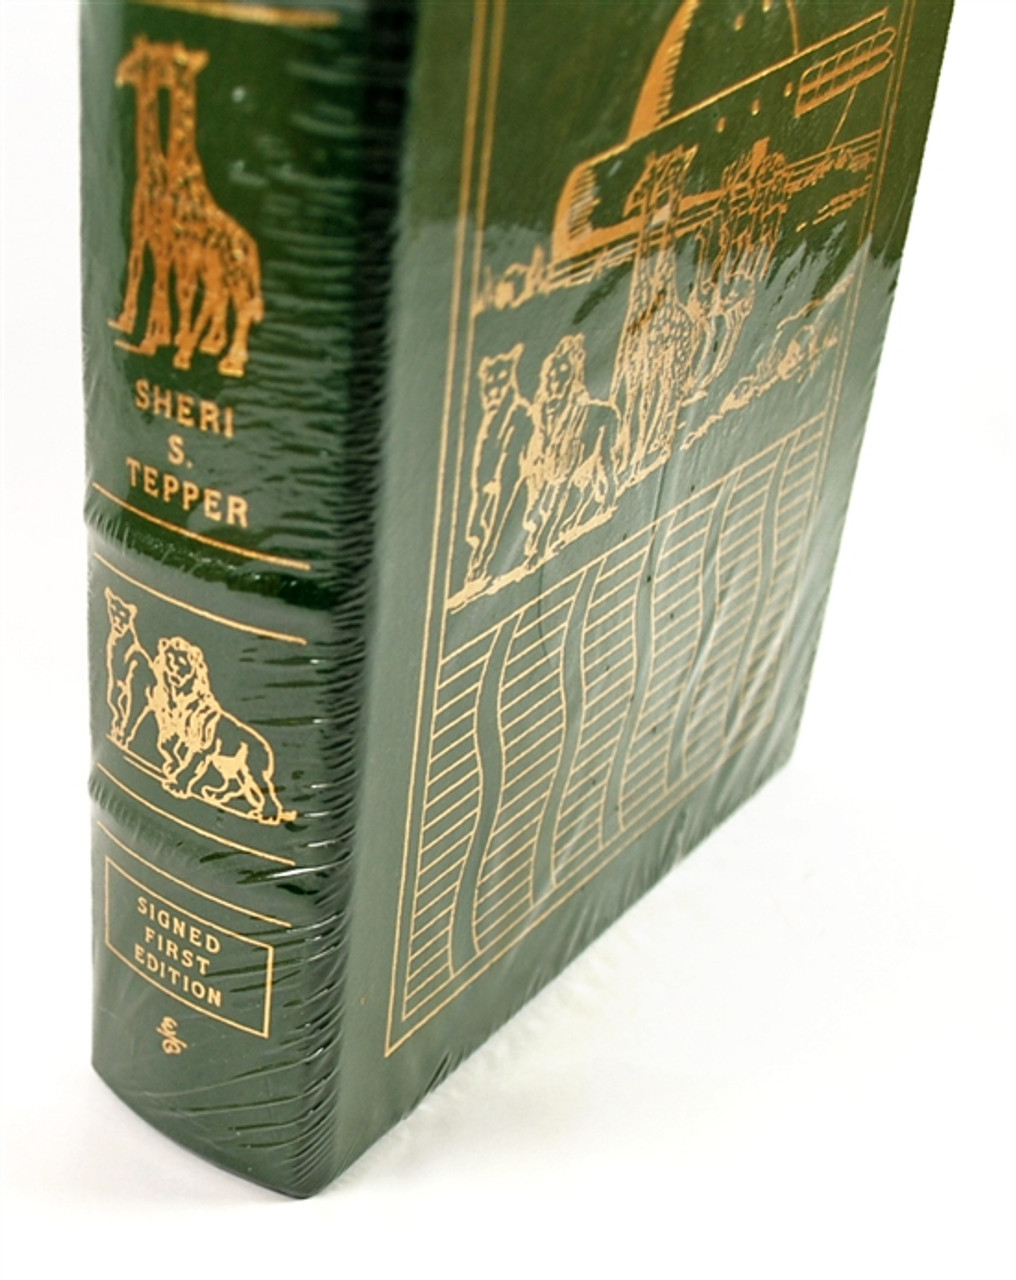 """Easton Press, Sheri S. Tepper """"The Companions"""" Signed First Edition w/COA (Sealed)"""